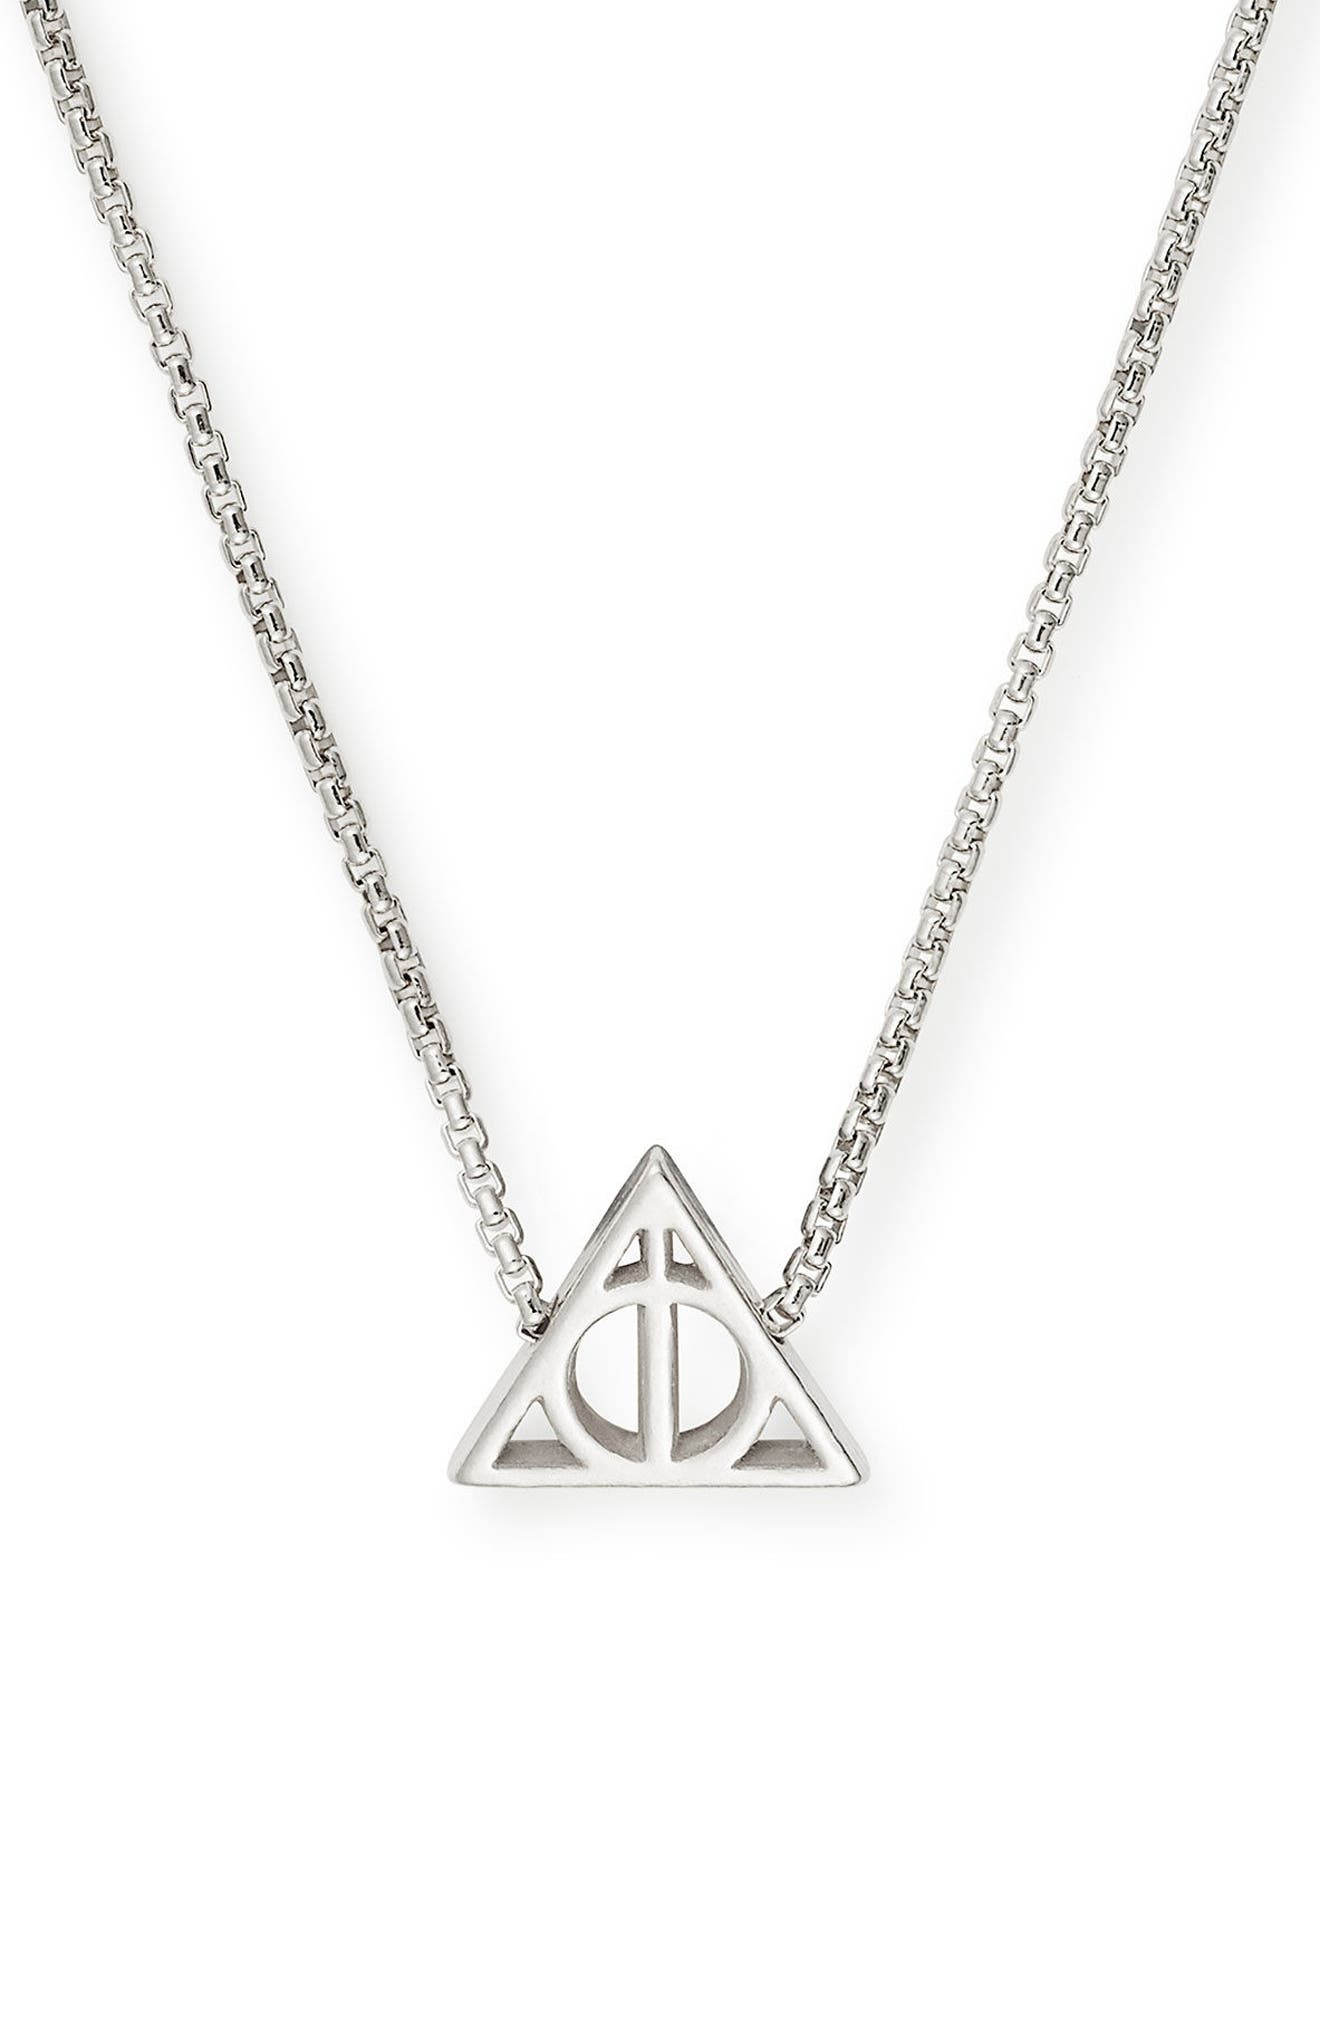 Harry Potter<sup>™</sup> Deathly Hallows<sup>™</sup> Necklace,                             Alternate thumbnail 2, color,                             Silver